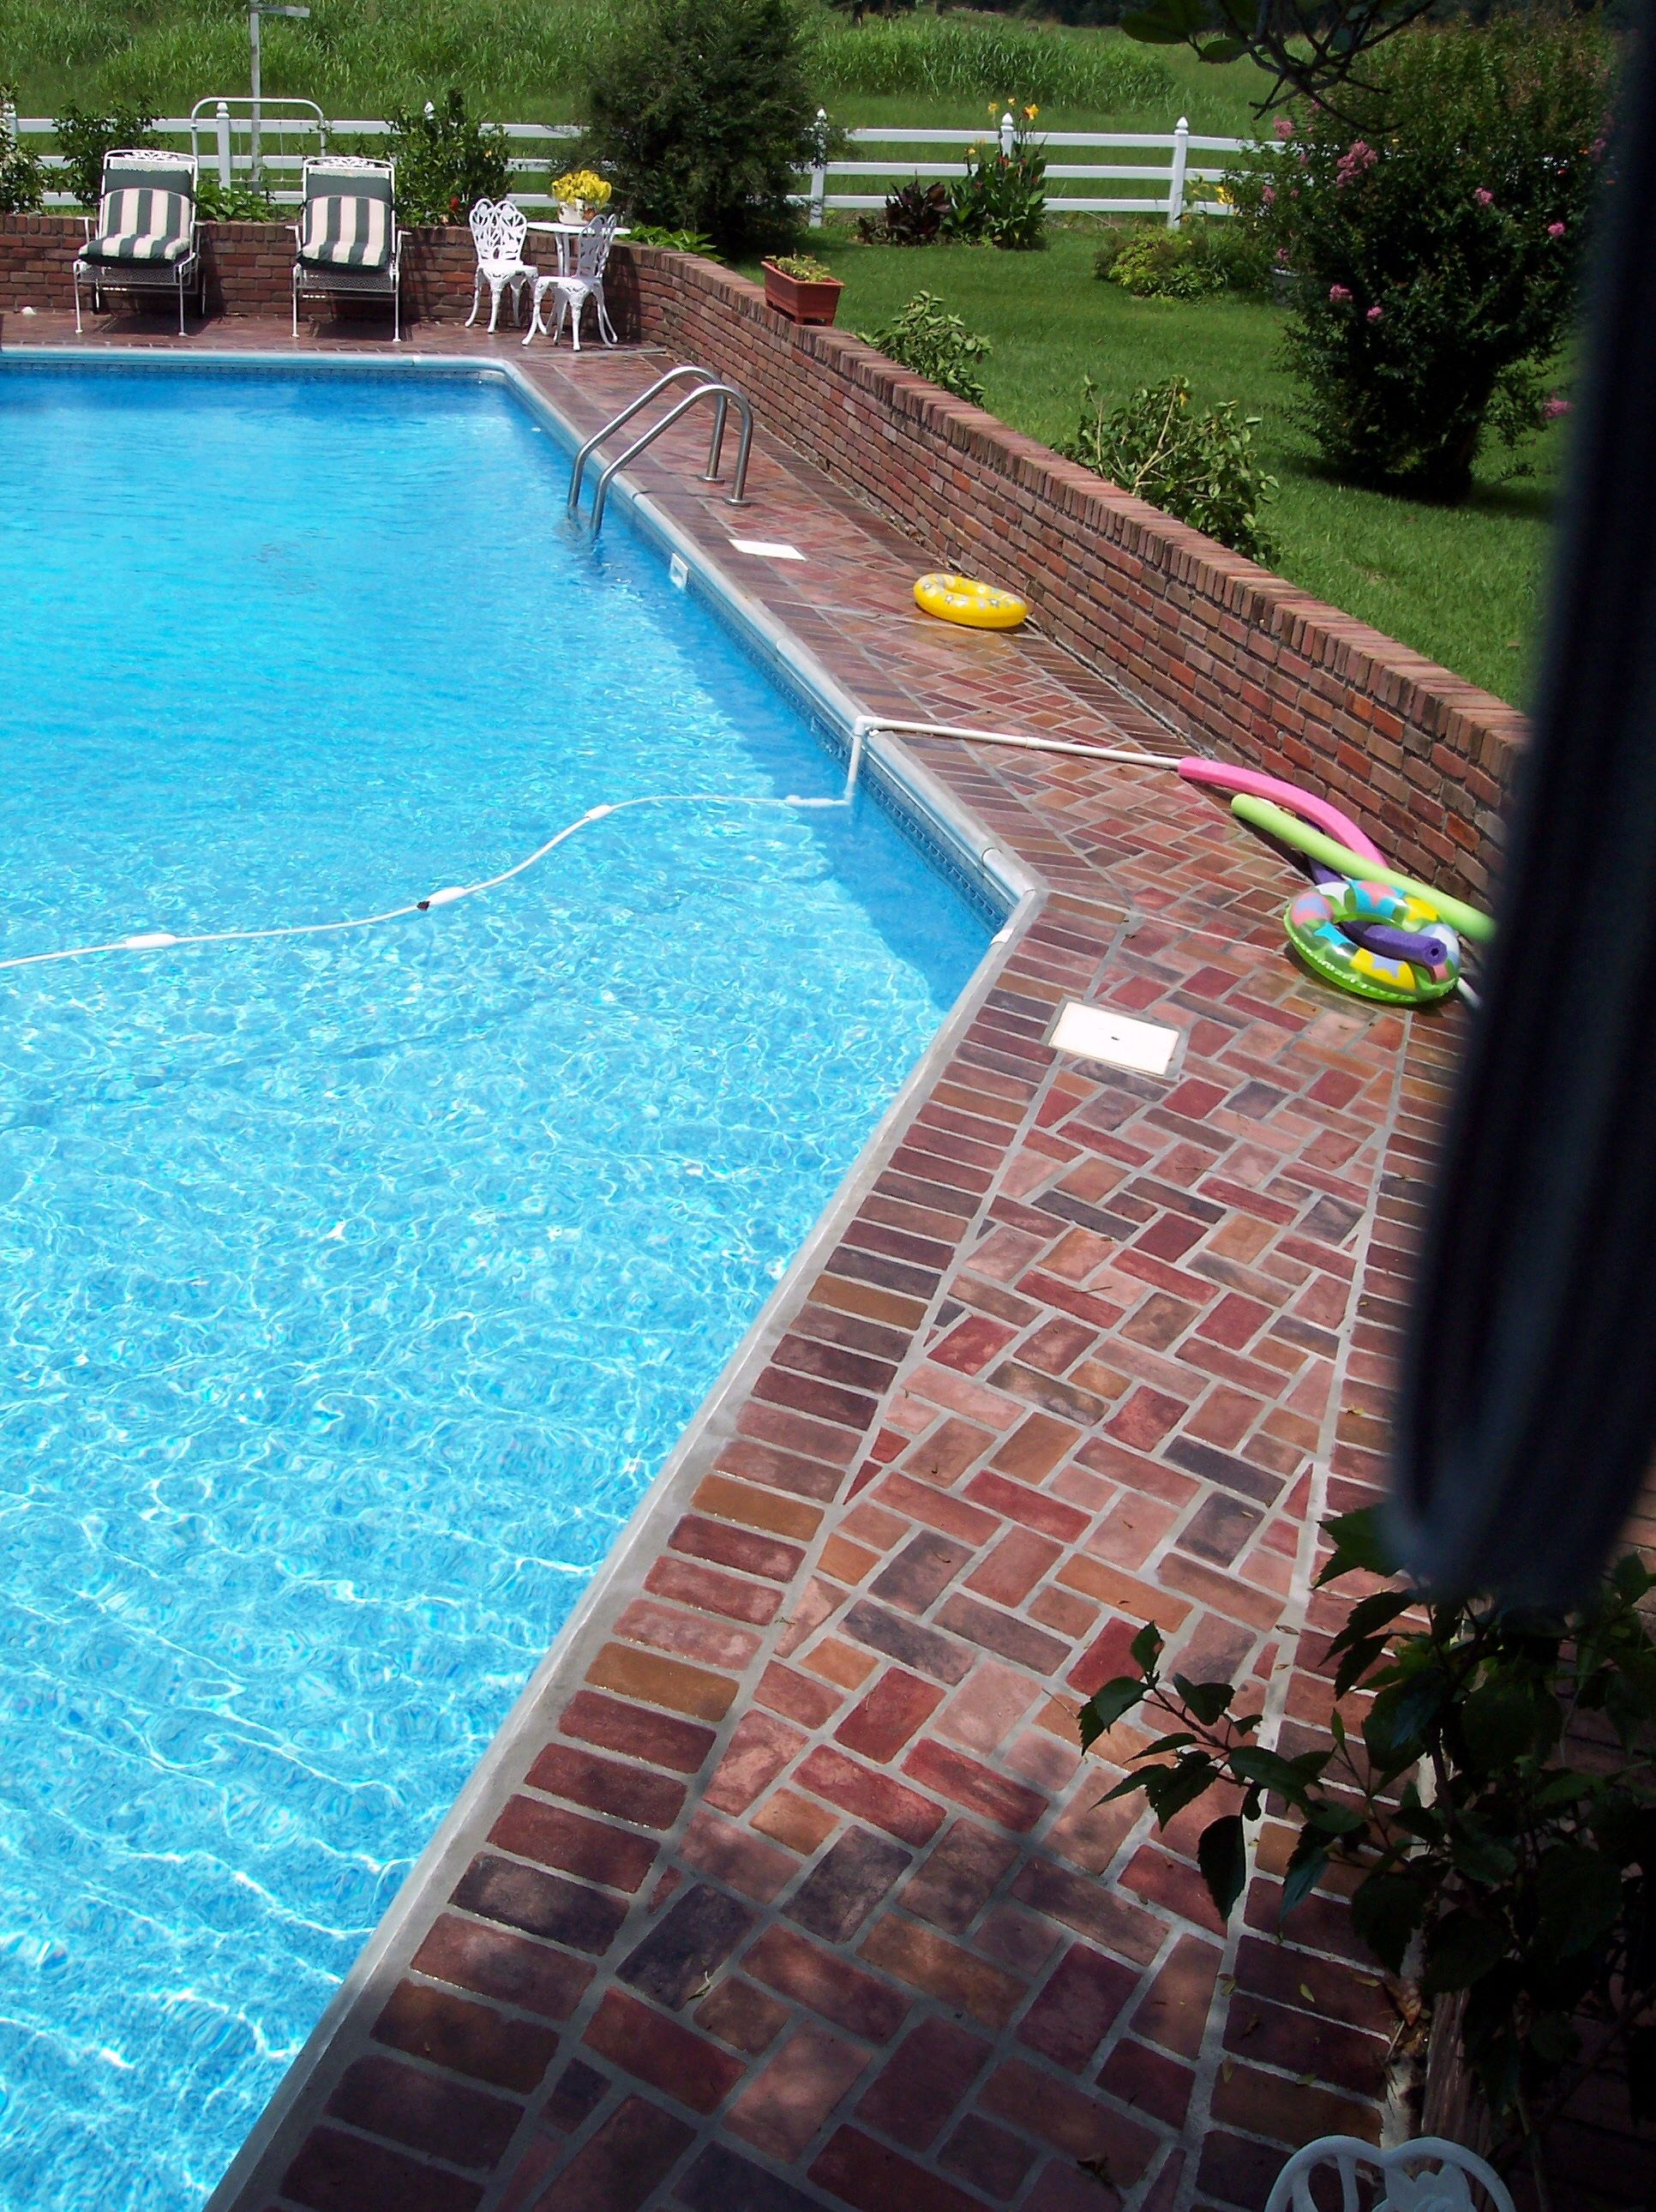 Brick Pool Deck Traditional Pool With Lovely Used Brick Patio & Decking  Garden